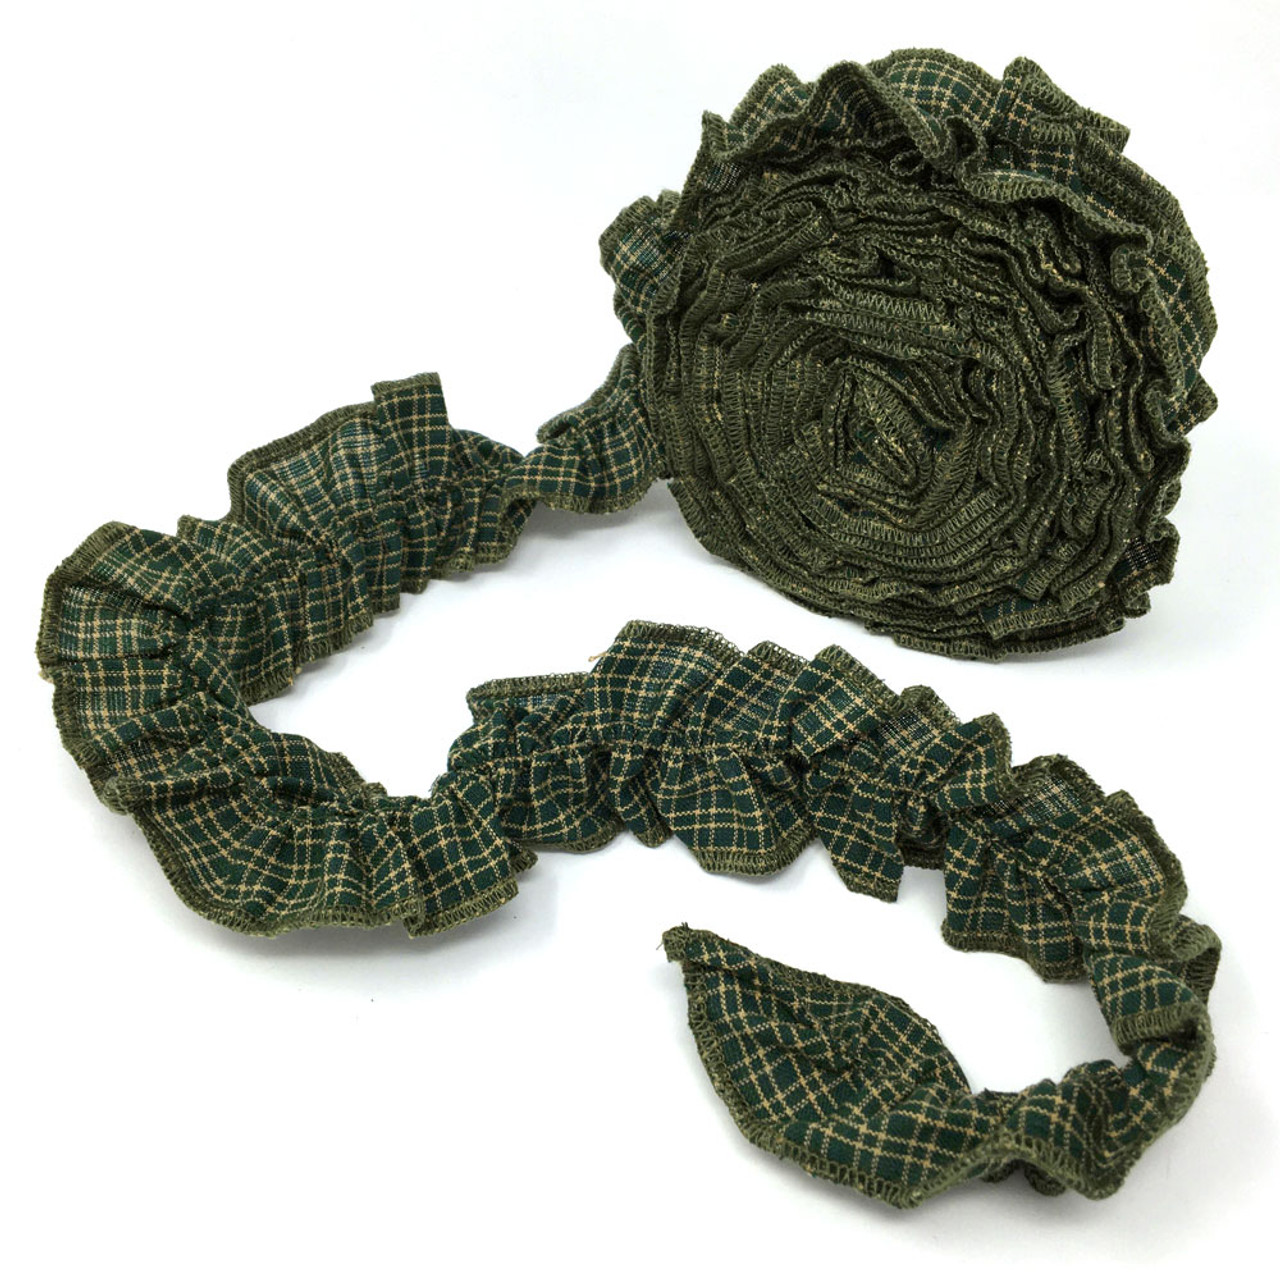 Green 1 Ruffled Trim/Garland  - 1 roll - 144 inches (12 feet)